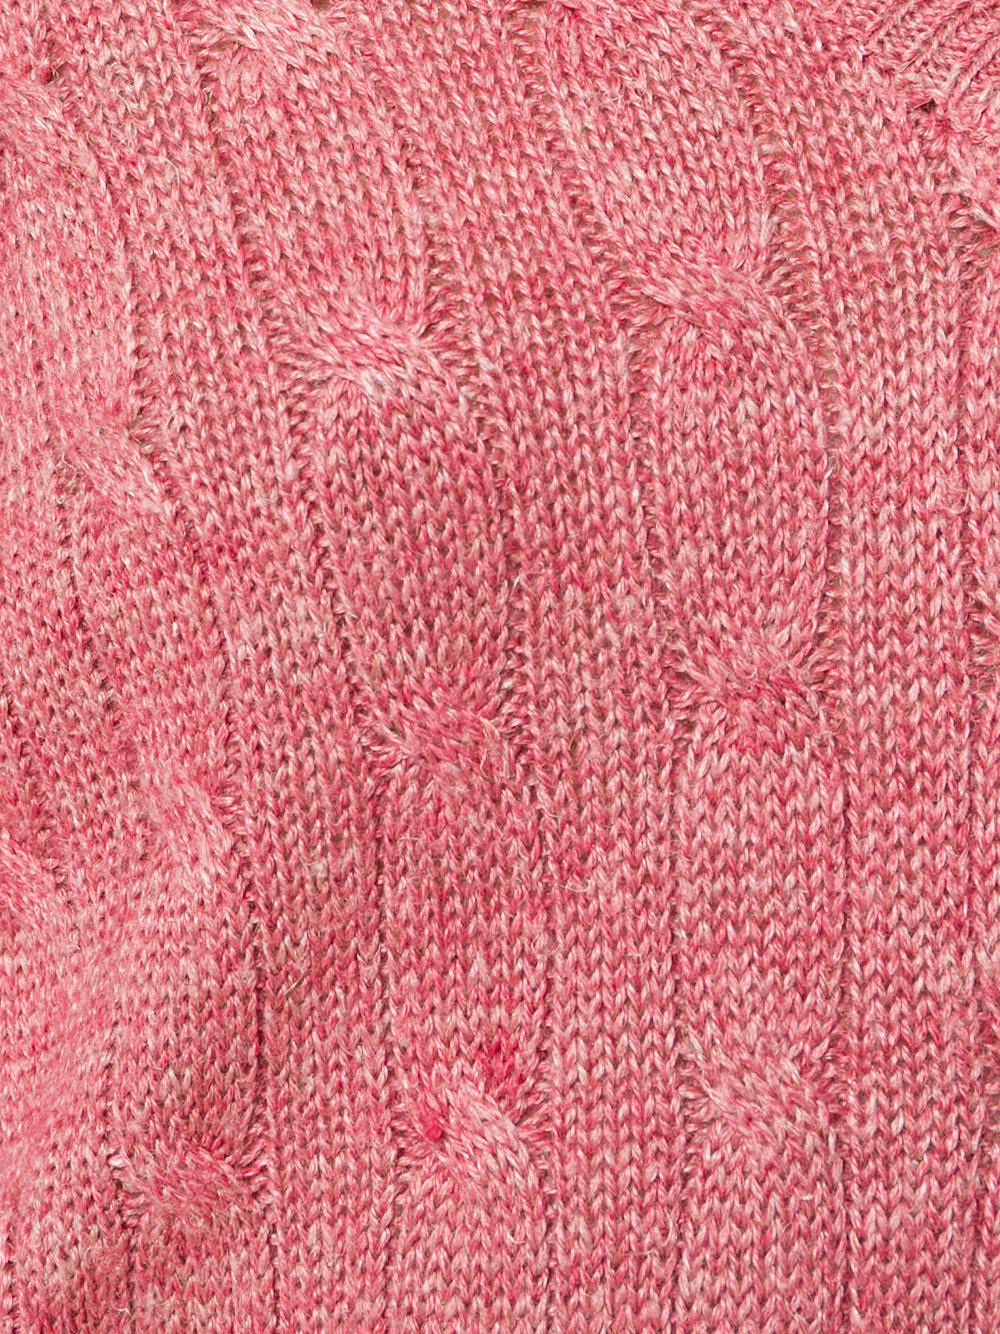 Ralph lauren Classic Knitted Sweater in Pink | Lyst